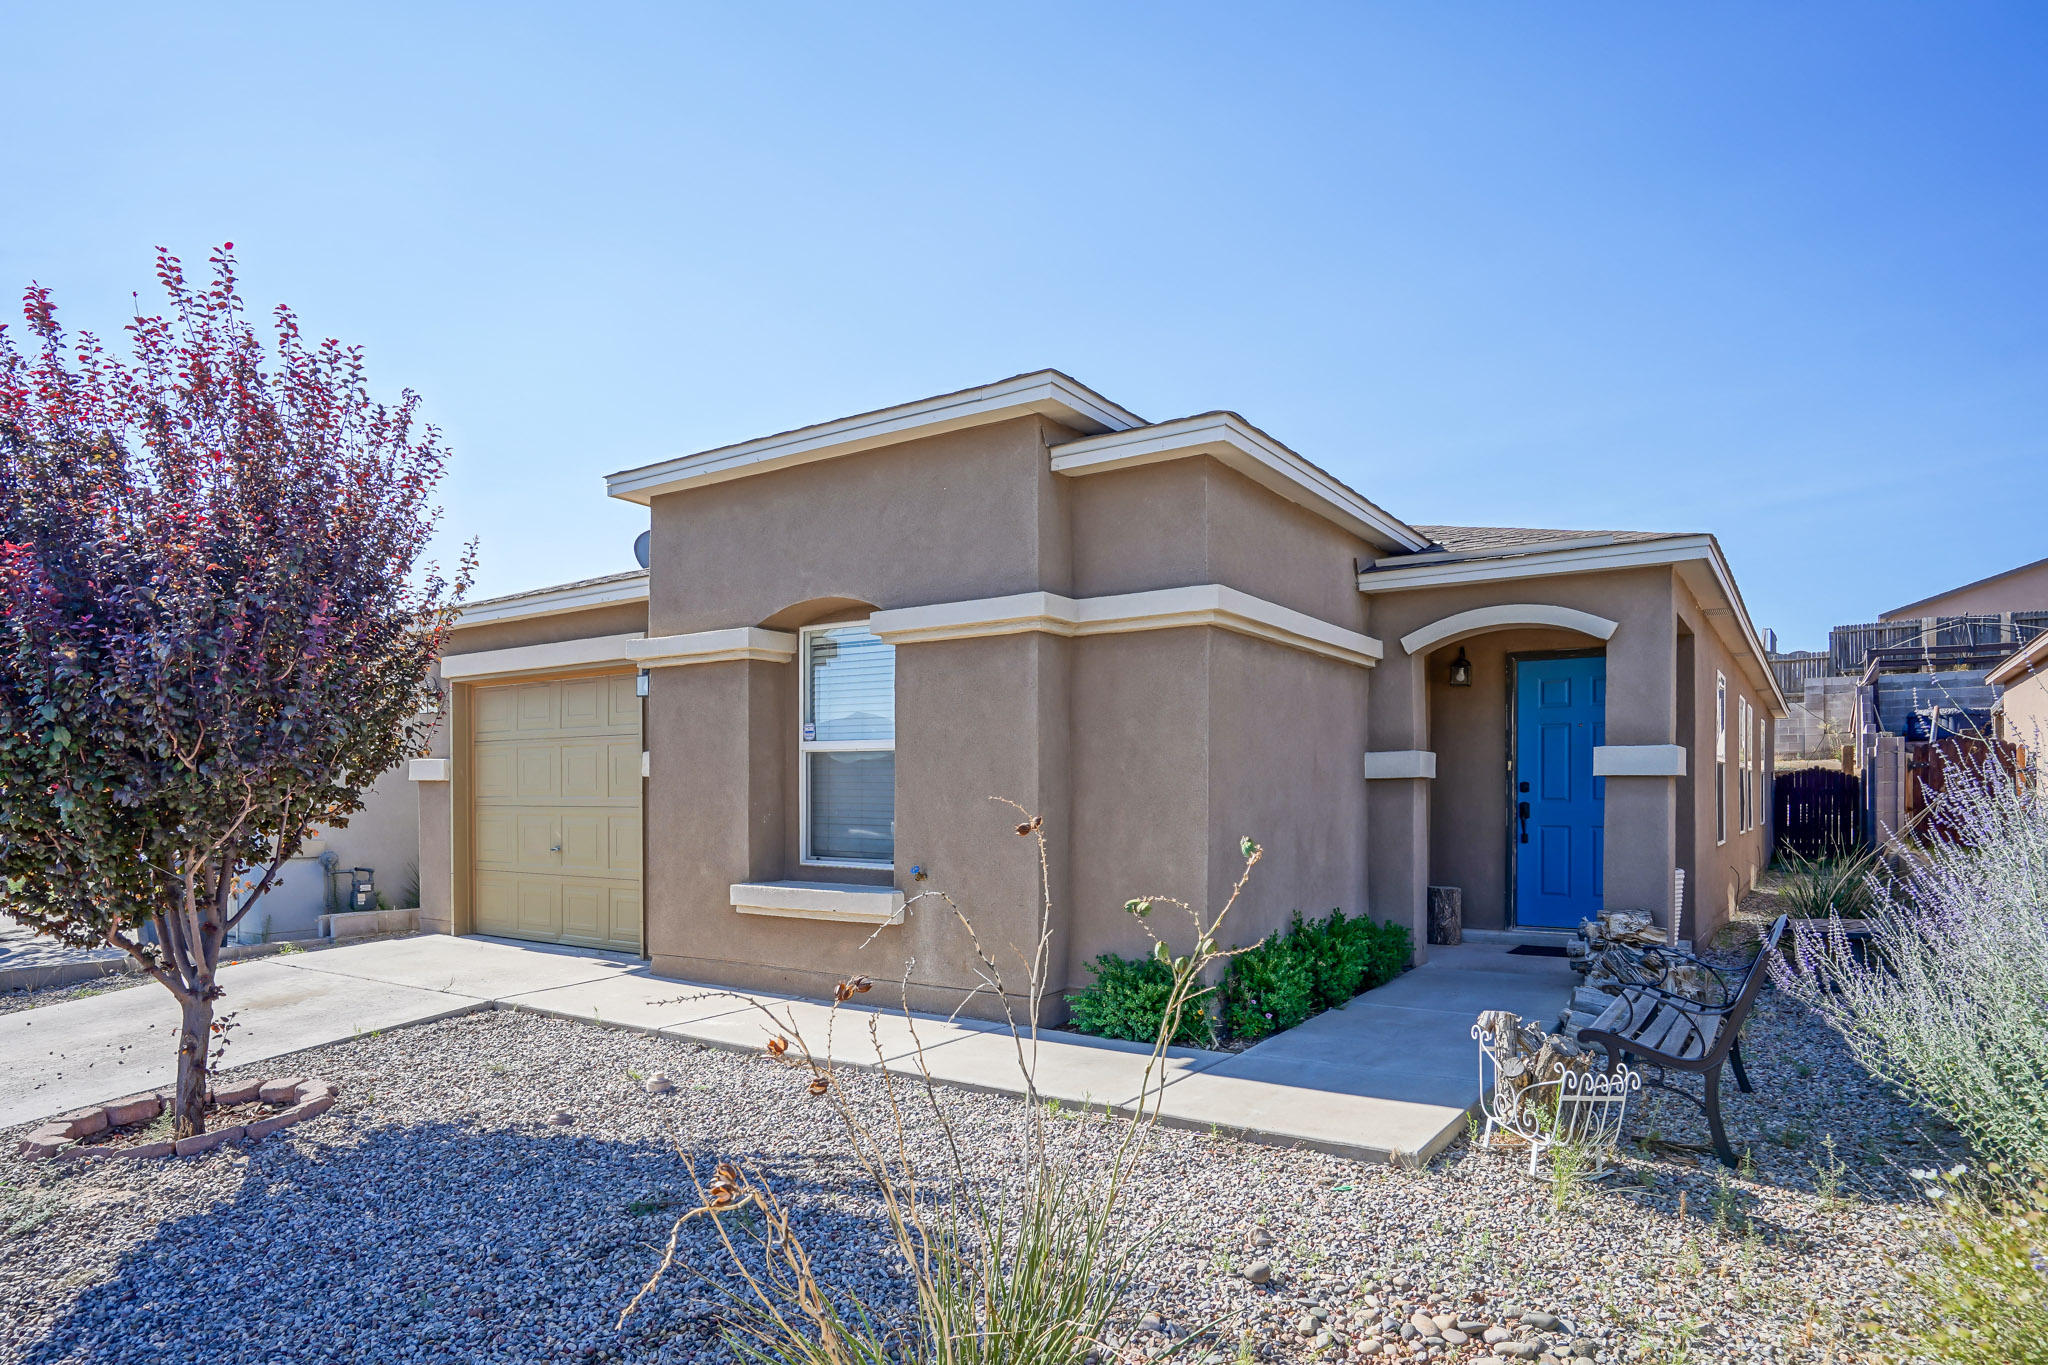 Great Starter Home boasting newer Interior Paint, newer Kitchen Quartz Countertops with added Counter Space and Cabs, new Gas Stove as well! Backyard has been terraced with block walls installed. Close to Schools & Shopping! Move-in Ready -Home won't last long!